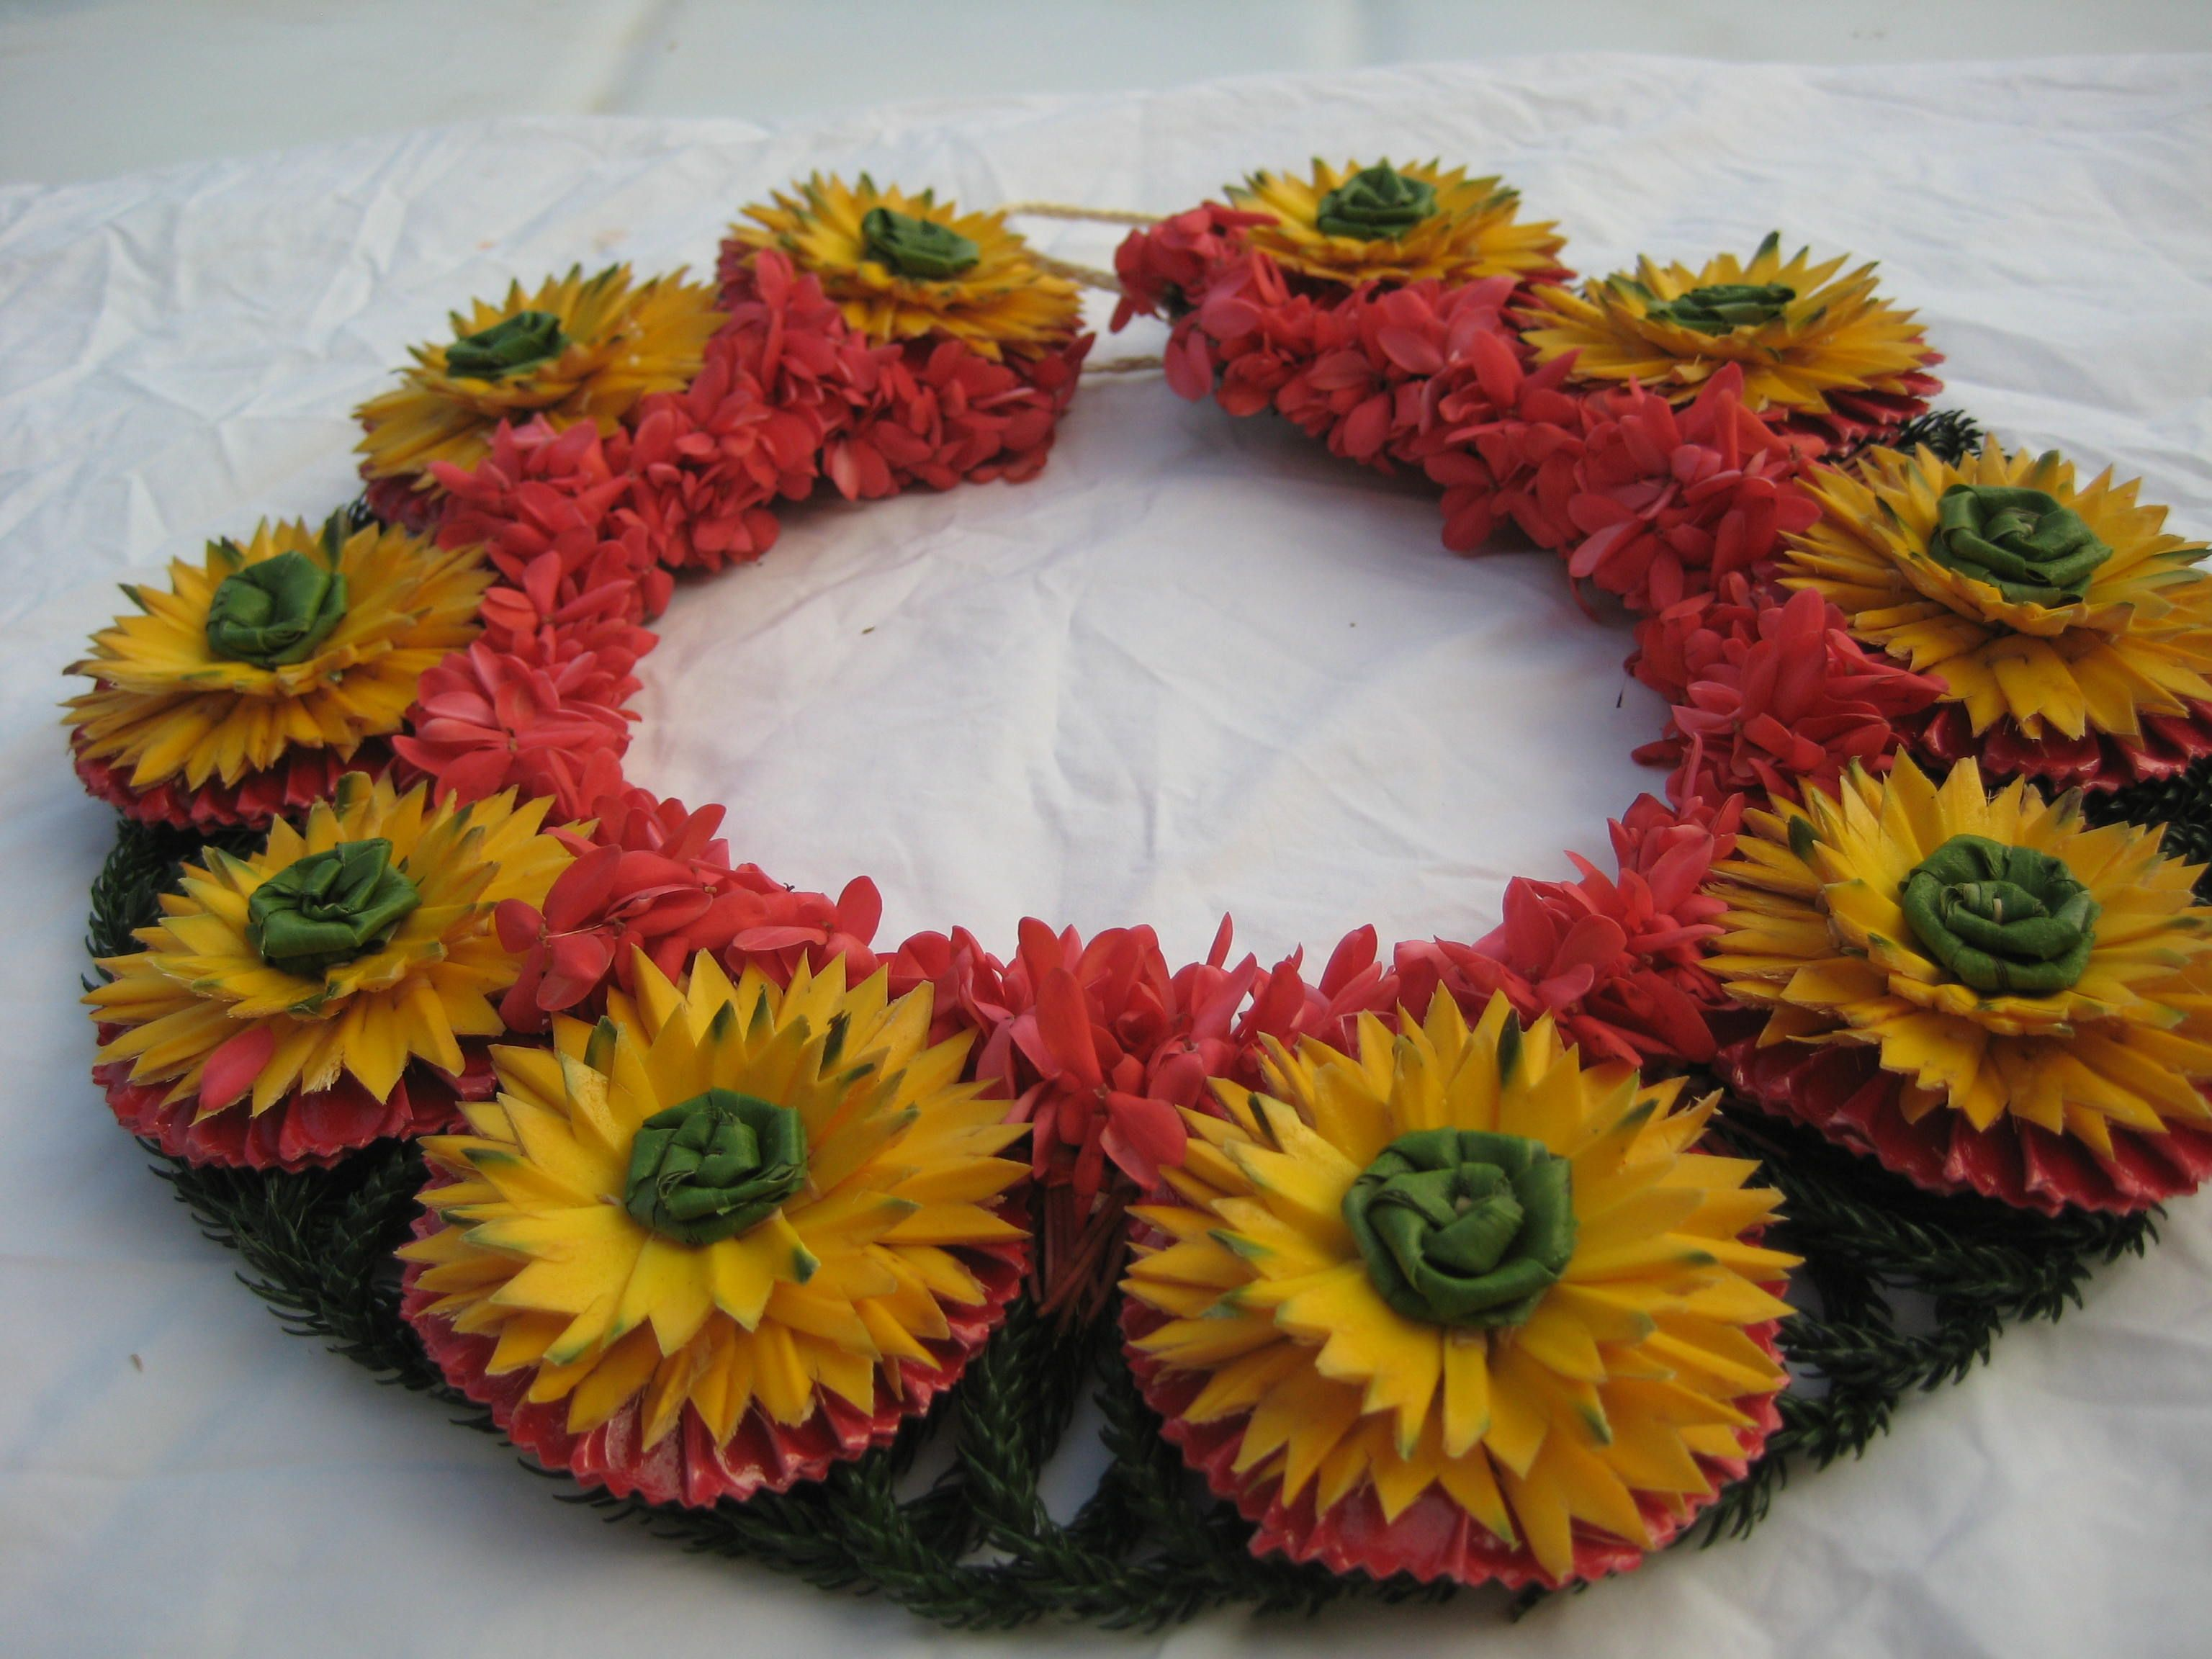 34 best poly leis images on pinterest floral wreath garlands and kahoa island craftsleishula skirtdiy flowerstongagraduationgarlandsorigami hawaii izmirmasajfo